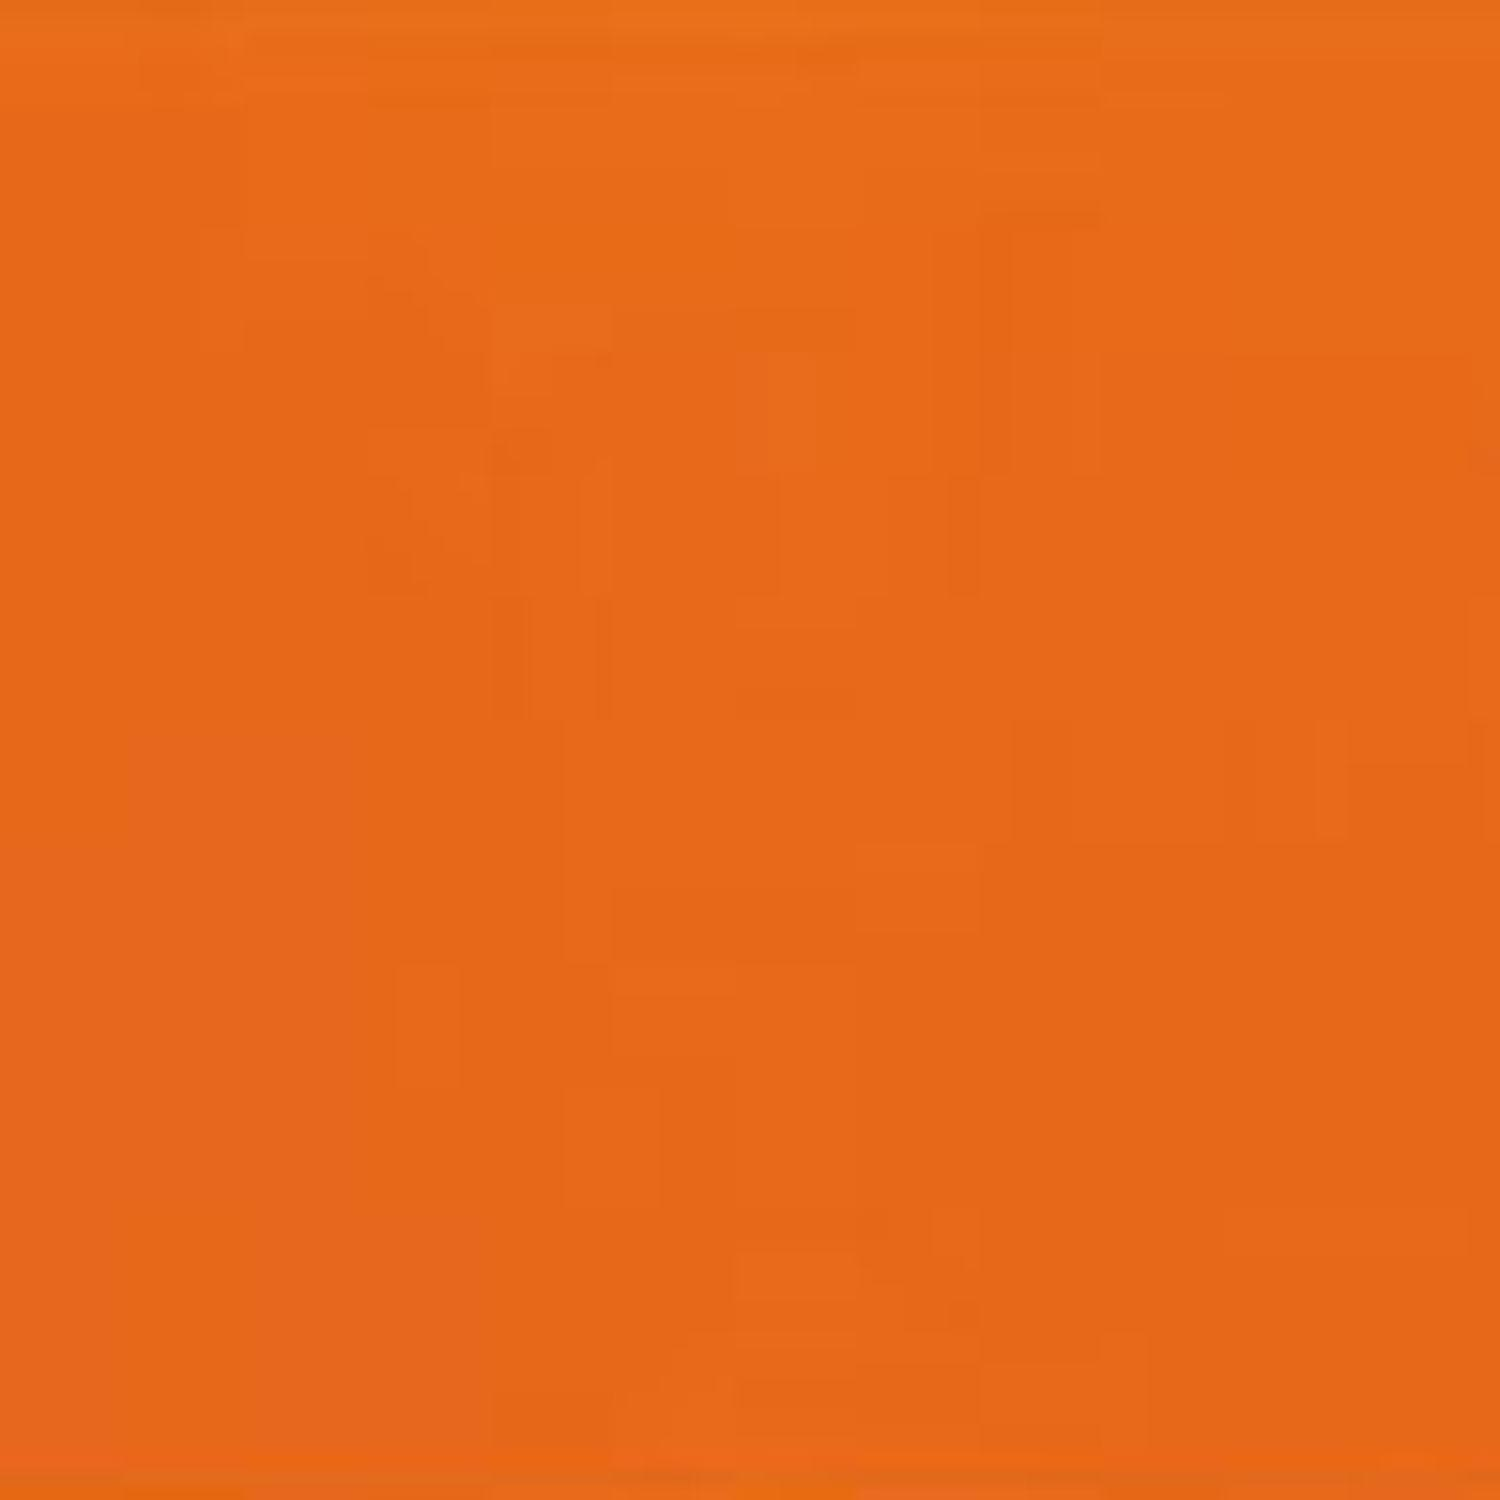 Orange Opal 270-72 (Handy Sheet 300 mm x 300 mm)